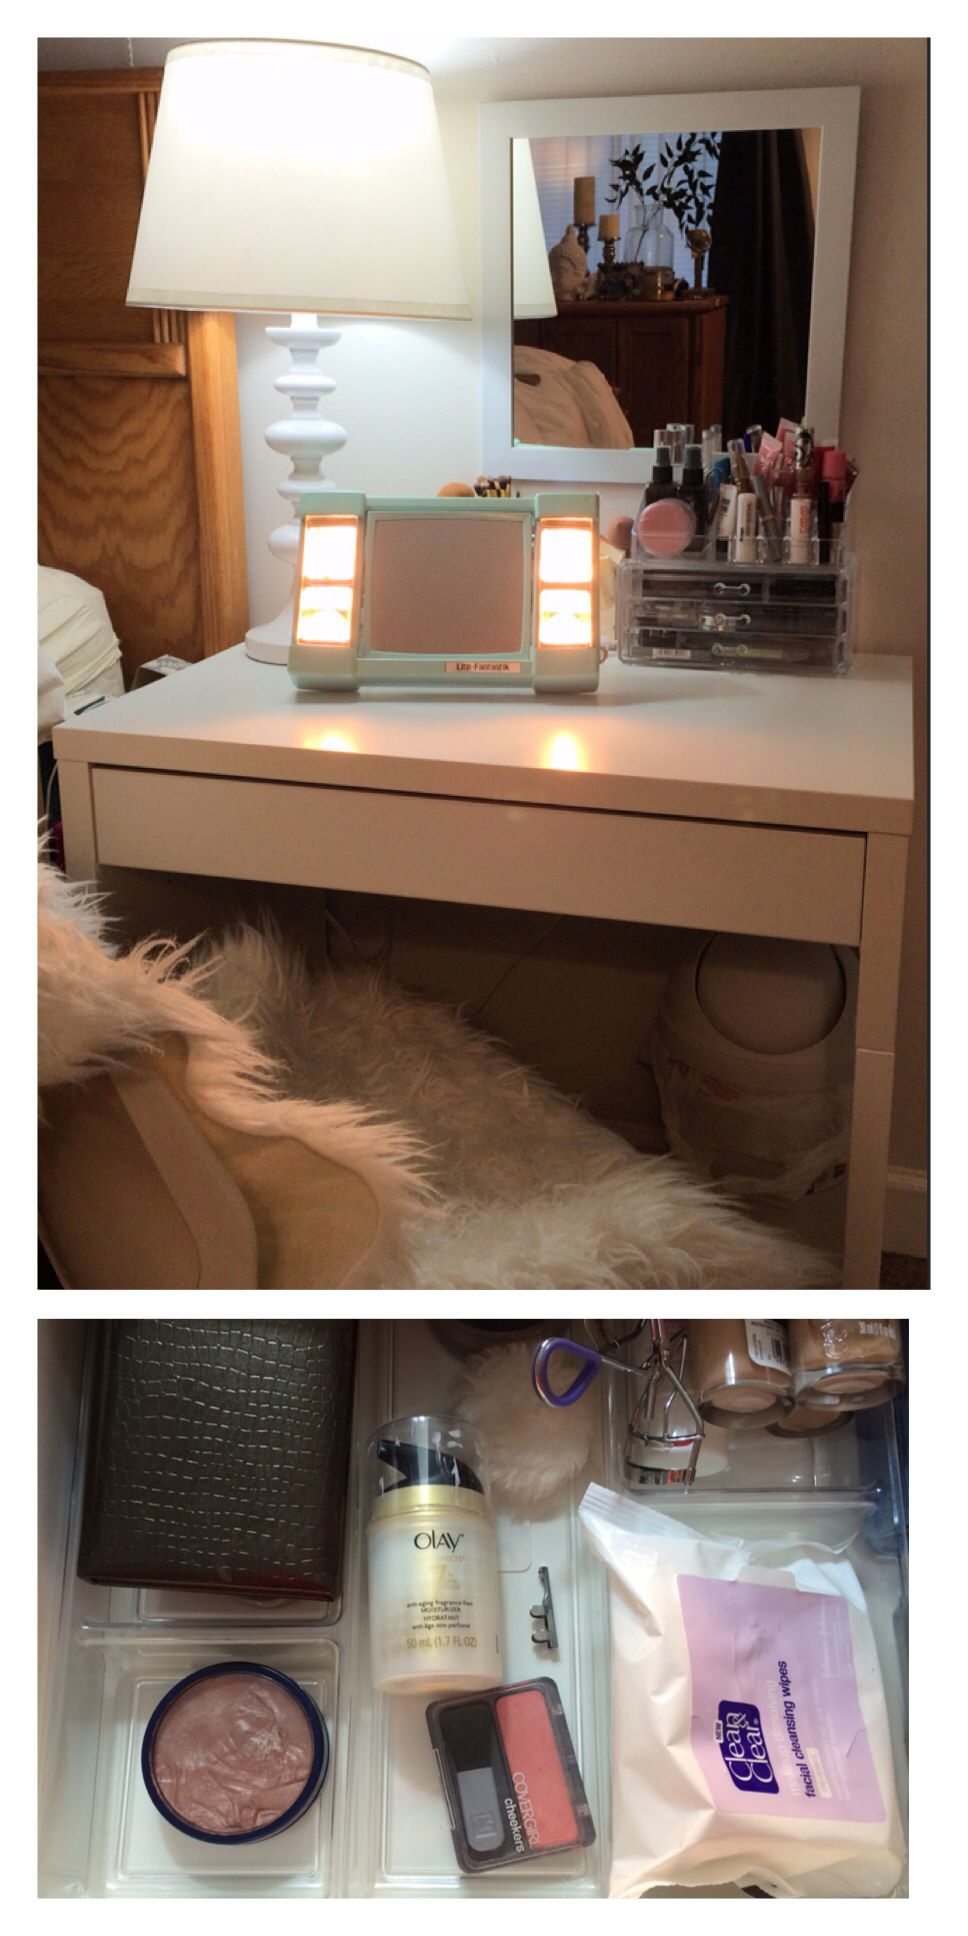 Image Gallery For Website Small bedside vanity with Ikea Micke desk acrylic drawer organizers from Walmart acrylic make